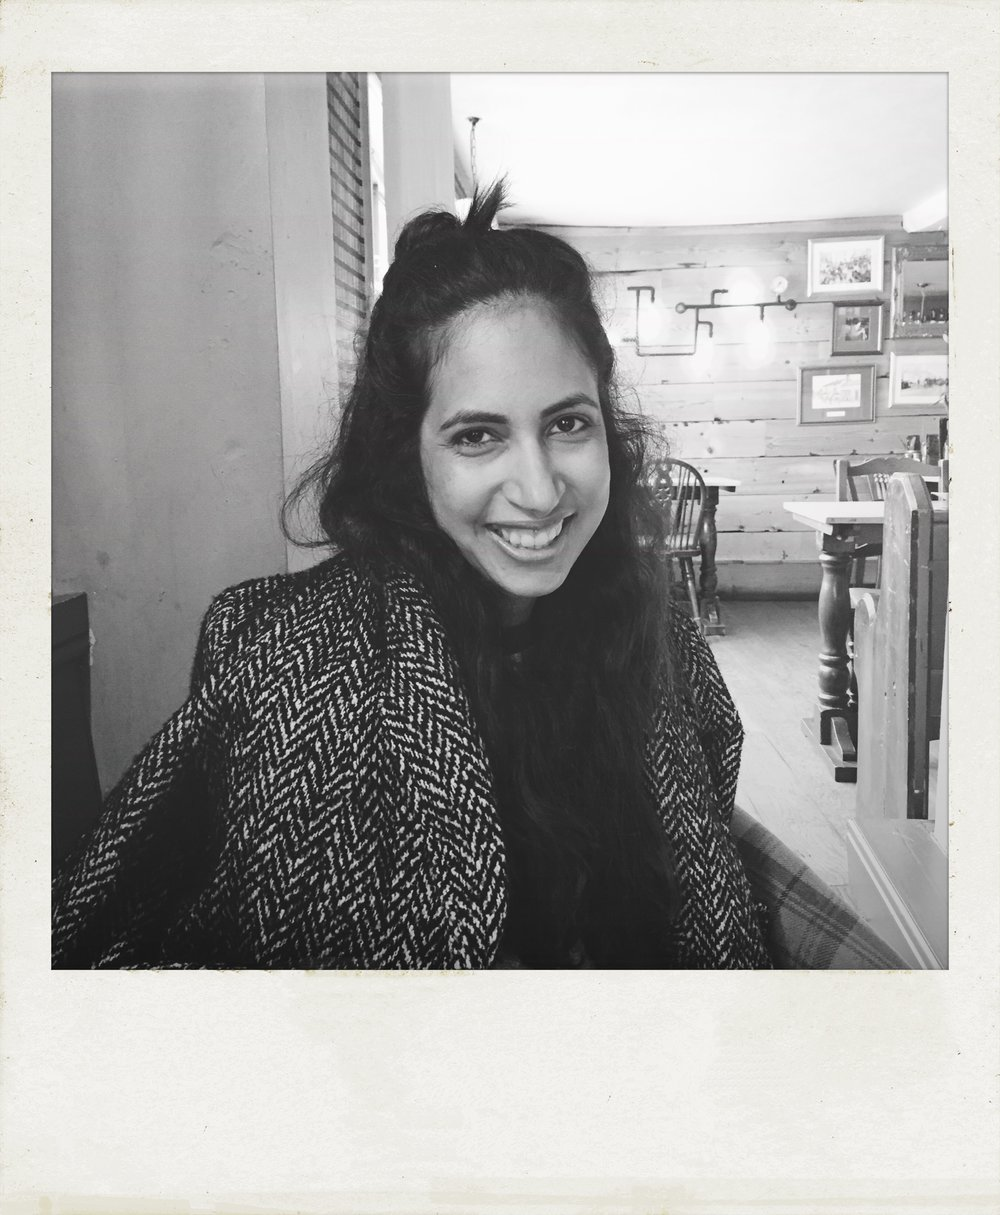 RENU RAVALIA - BORN AND BROUGHT UP IN LONDON, RENU HAS BEEN A LEICESTER RESIDENT SINCE 2016. A FEMALE ENTREPRENEUR WHO IS EXTREMELY PASSIONATE ABOUT EMPOWERING SMALL BUSINESSES TO BECOME MORE DIGITALLY SAVVY, SHE IS A KEEN WRITER, A COMMITTED MEDITATOR AND ALWAYS READY TO TRY SOMETHING NEW ESPECIALLY IF IT INVOLVES AN ADVENTURE!